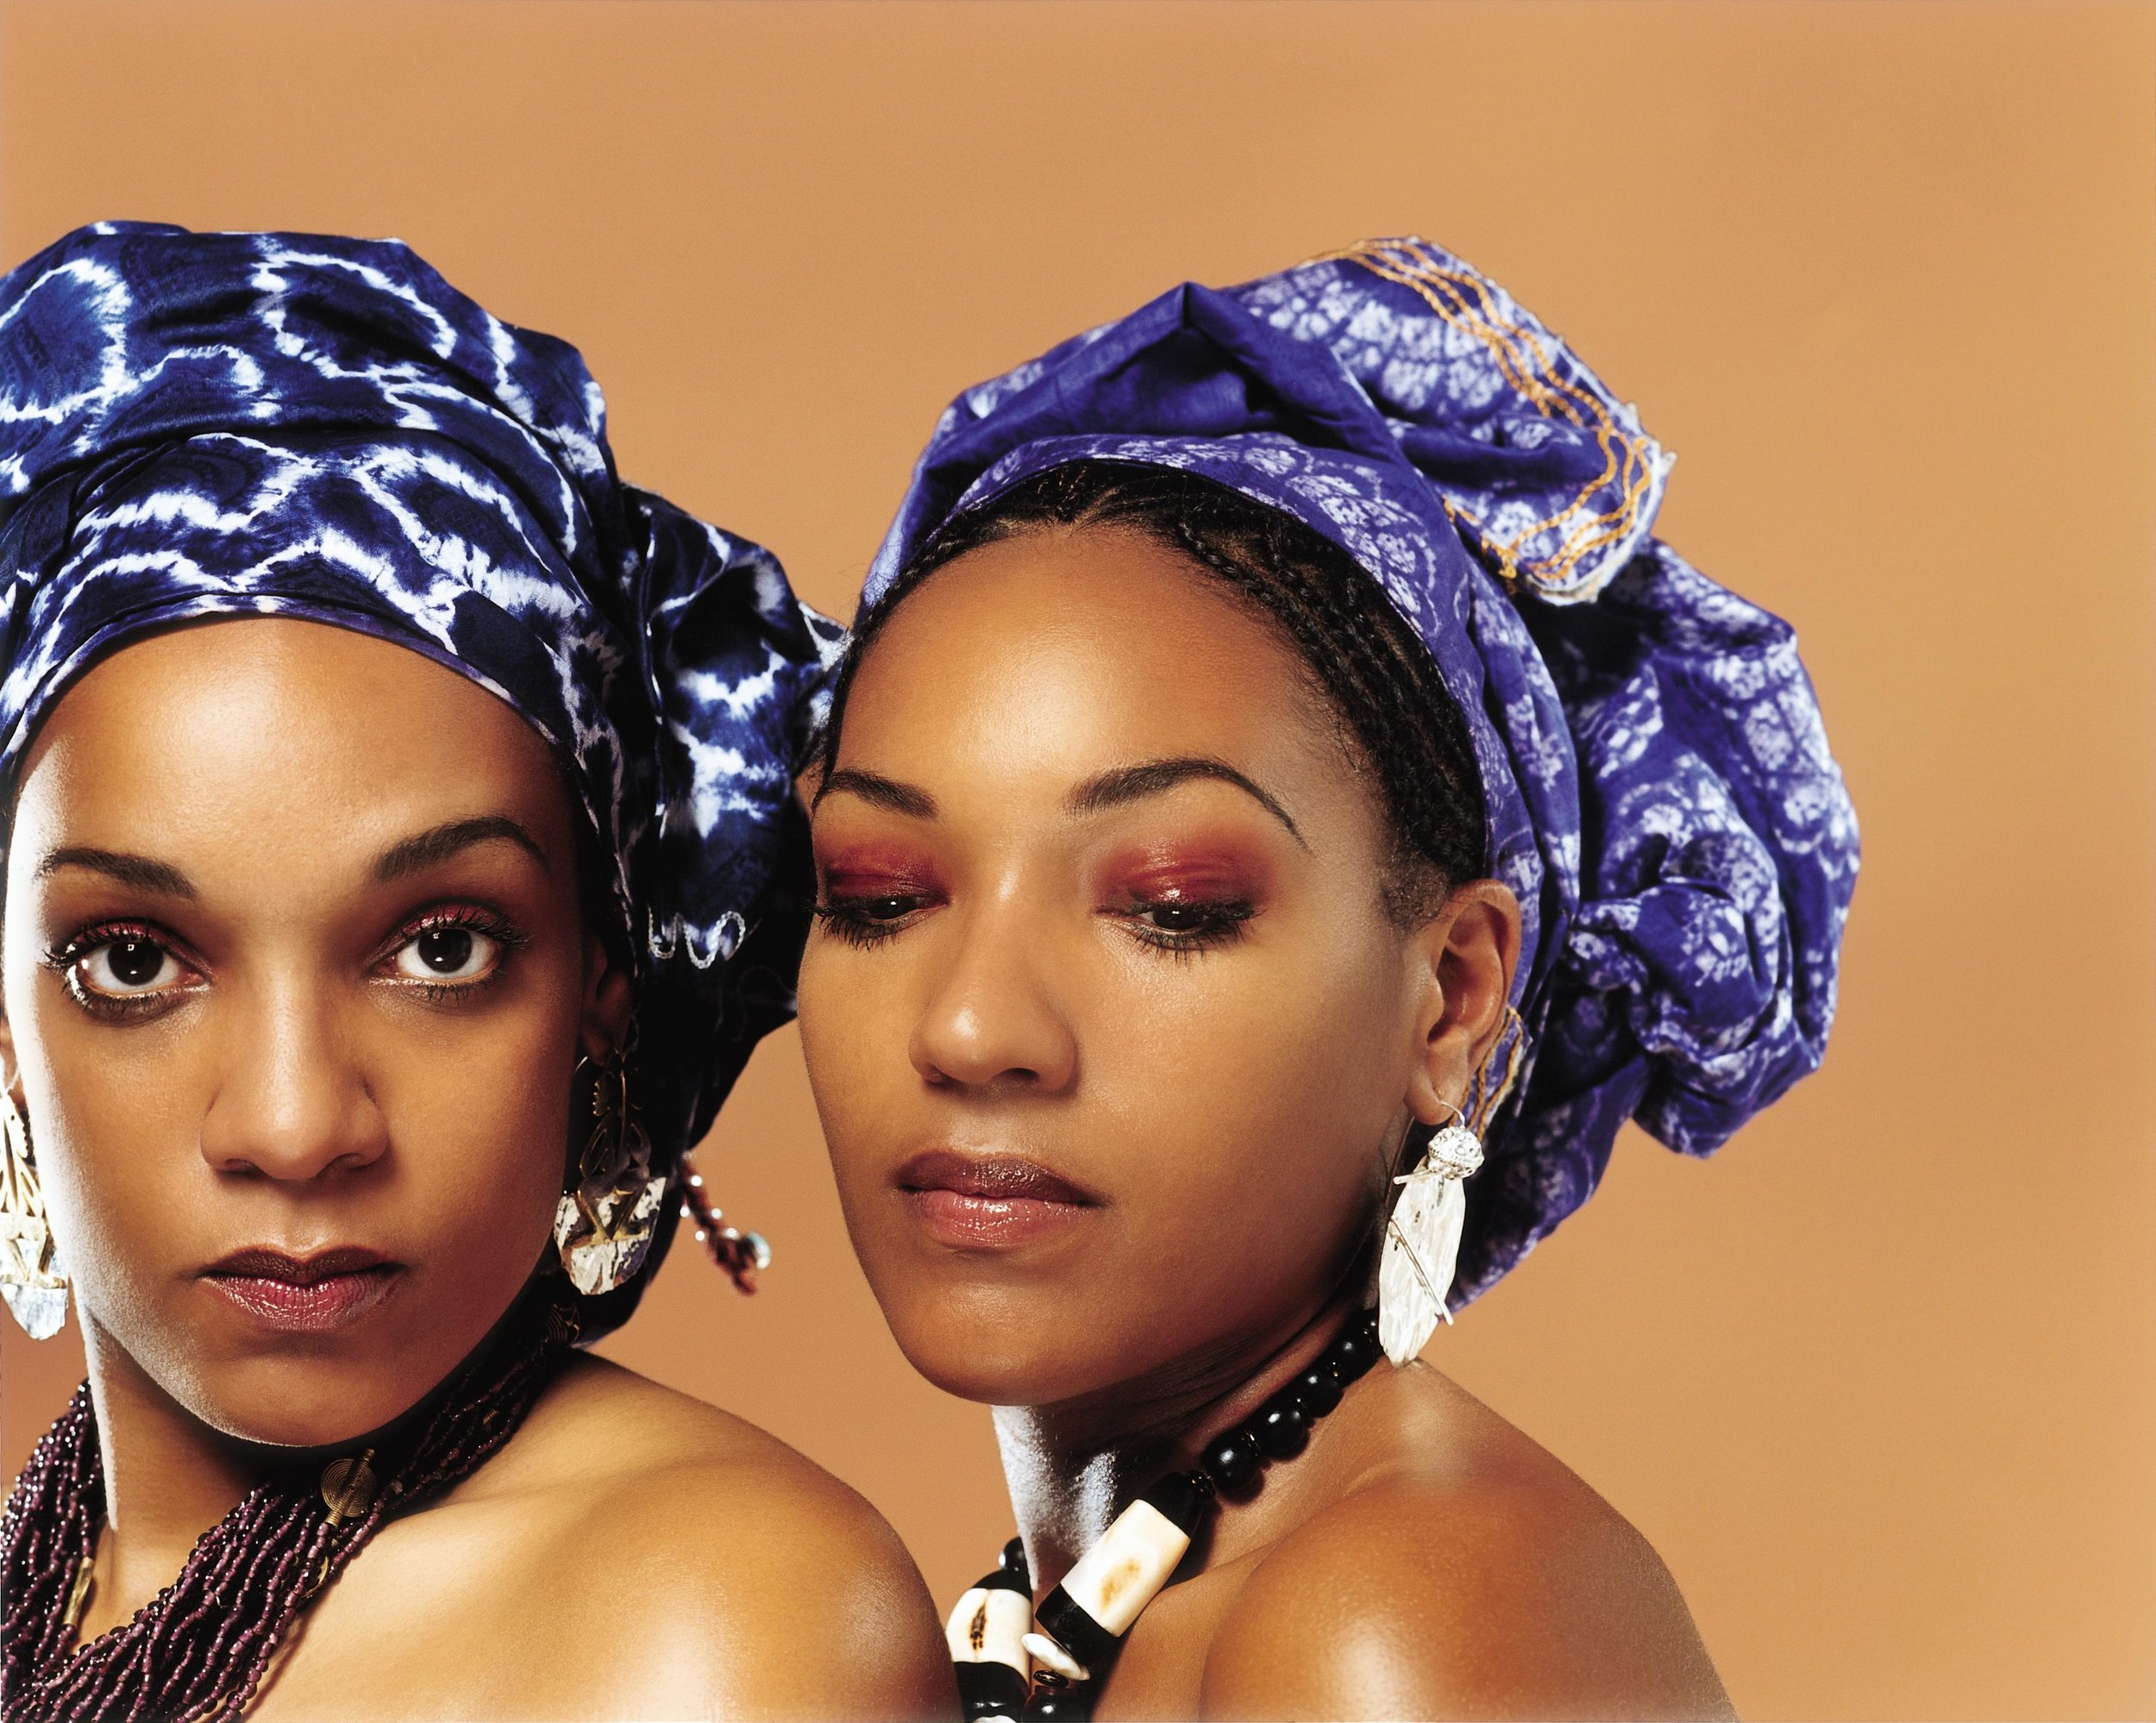 Les Nubians                                                                  Photo Credit: Marc Baptiste